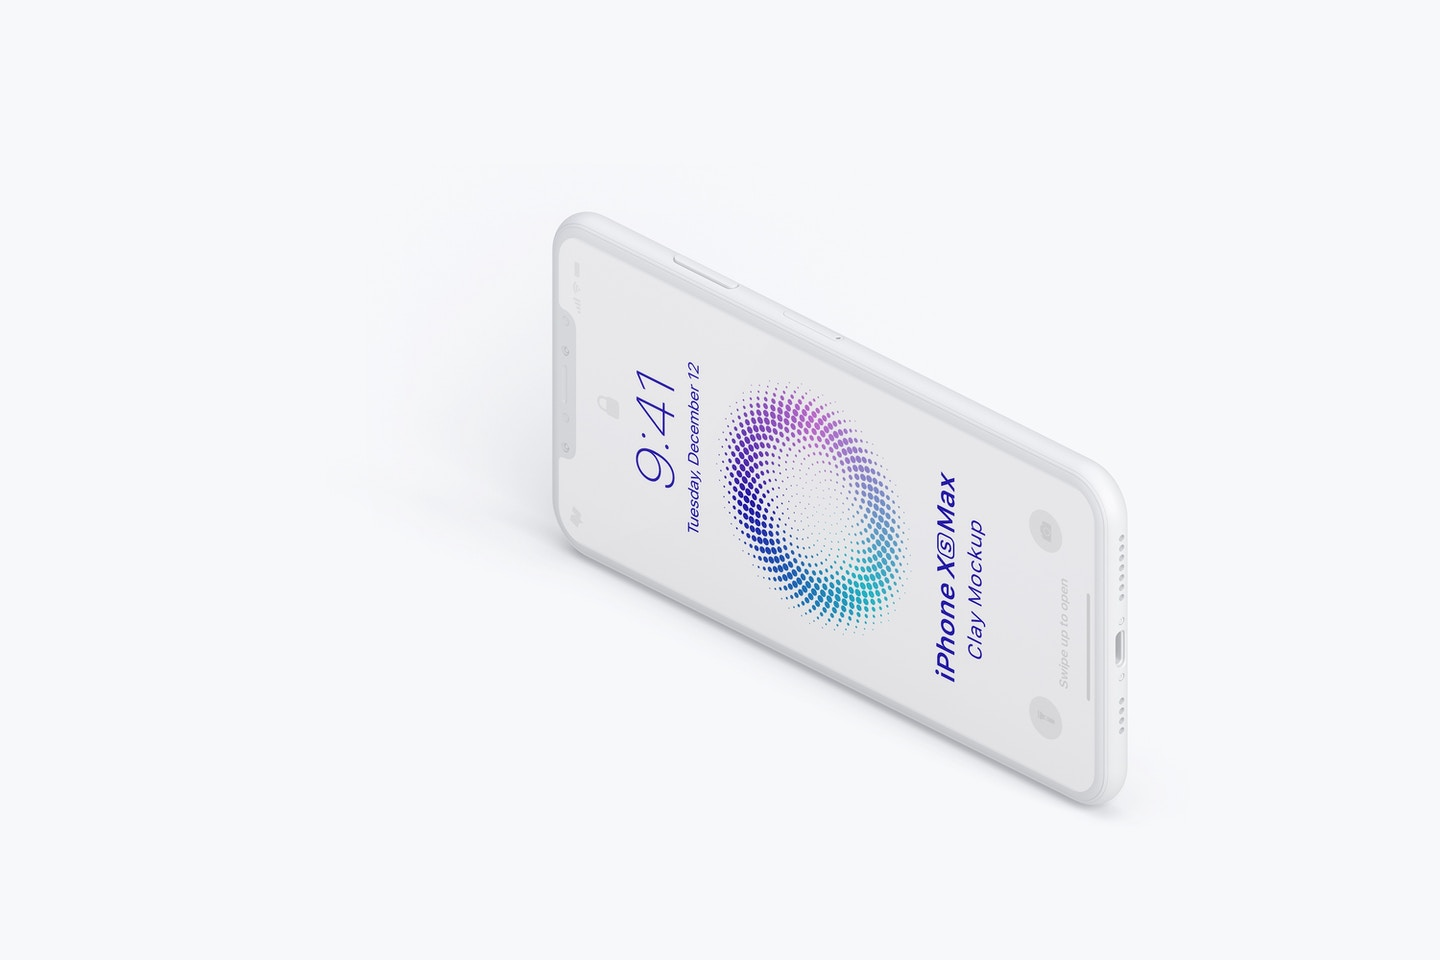 Isometric Clay iPhone XS Max Mockup, Right View 03